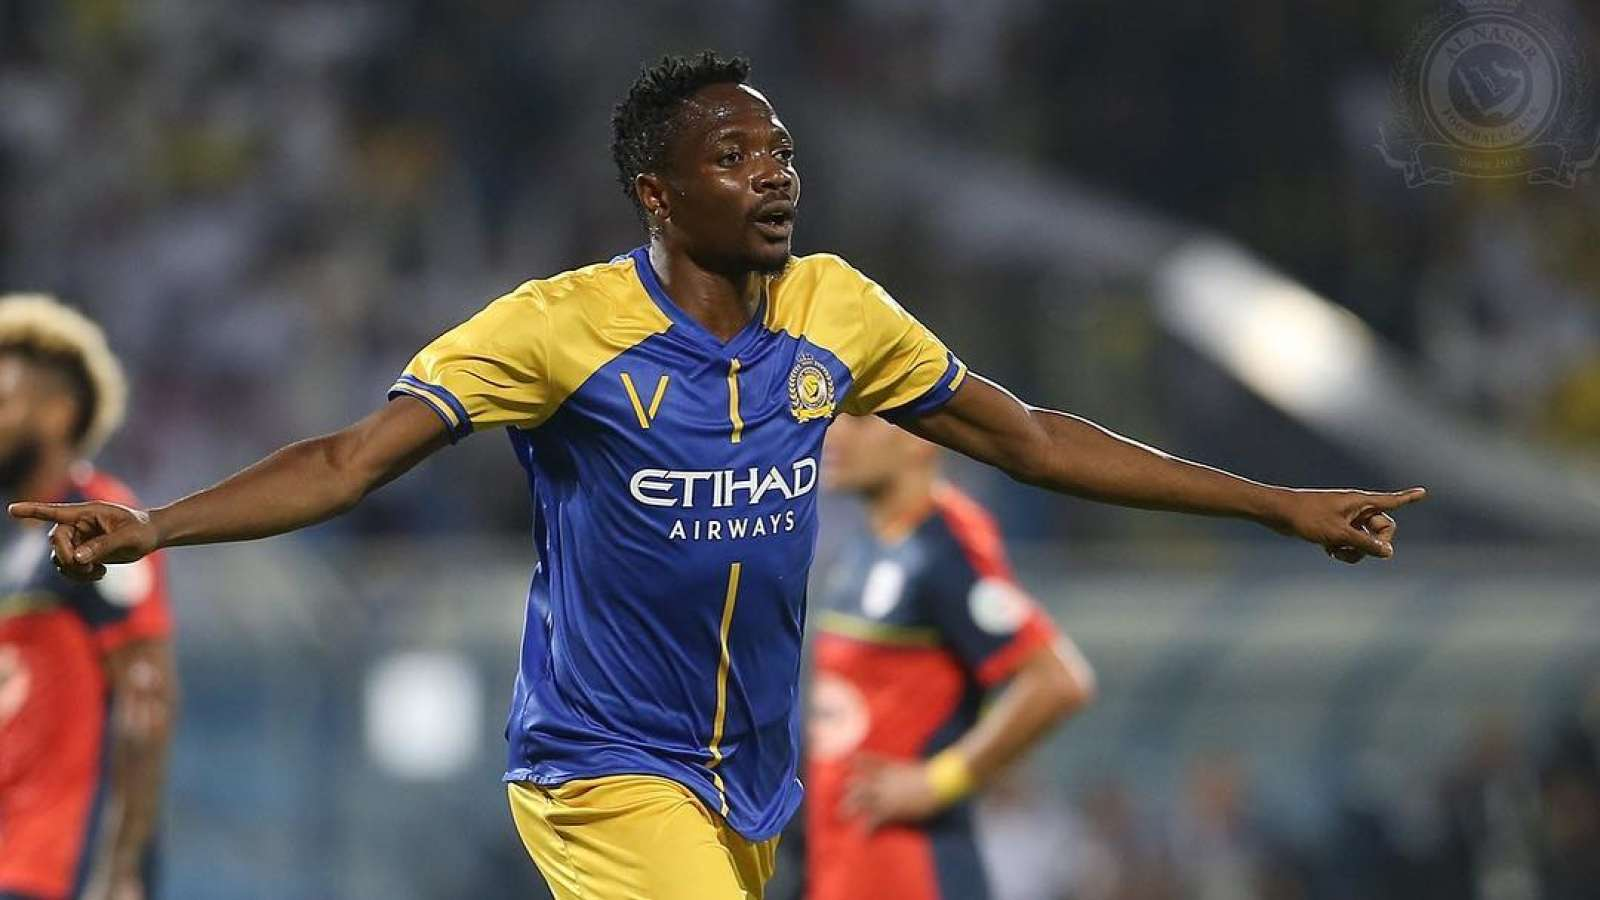 No Galatasaray offer yet, says Musa